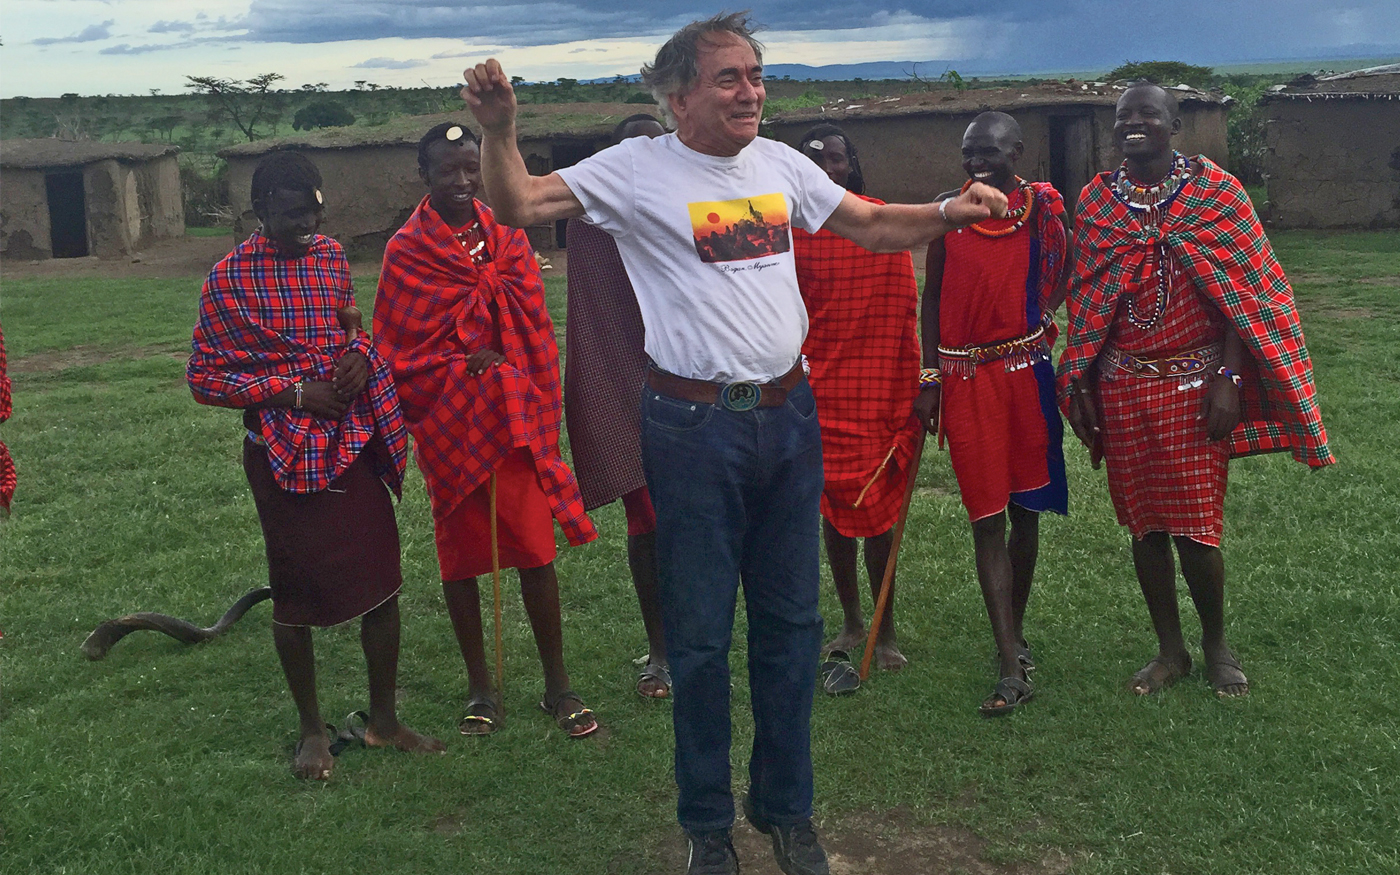 The author shows off his jumping ability to warriors in a Maasai village. Photo Credit: Courtesy of Abe Peck